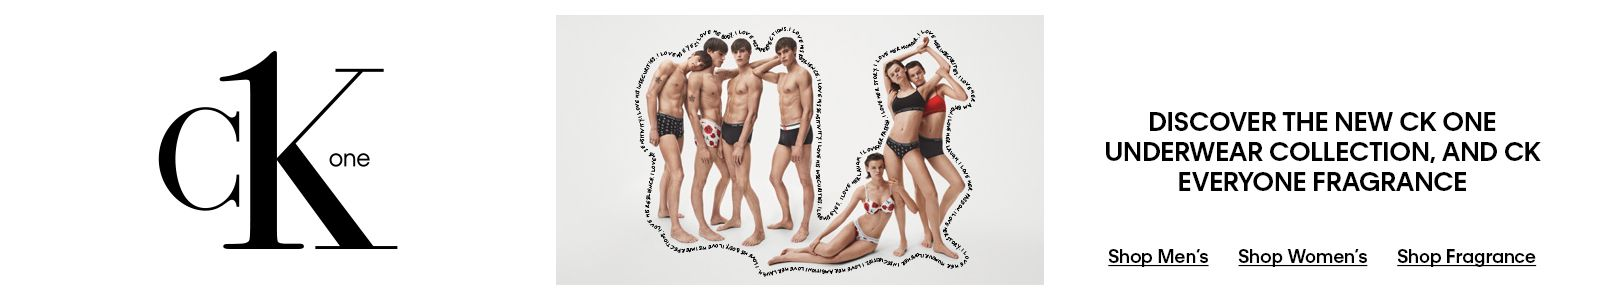 Ck one, Discover The New Ck One Underwear Collection, and Ck Everyone Frangrance, Shop Men's Shop Women's Shop Frangrance